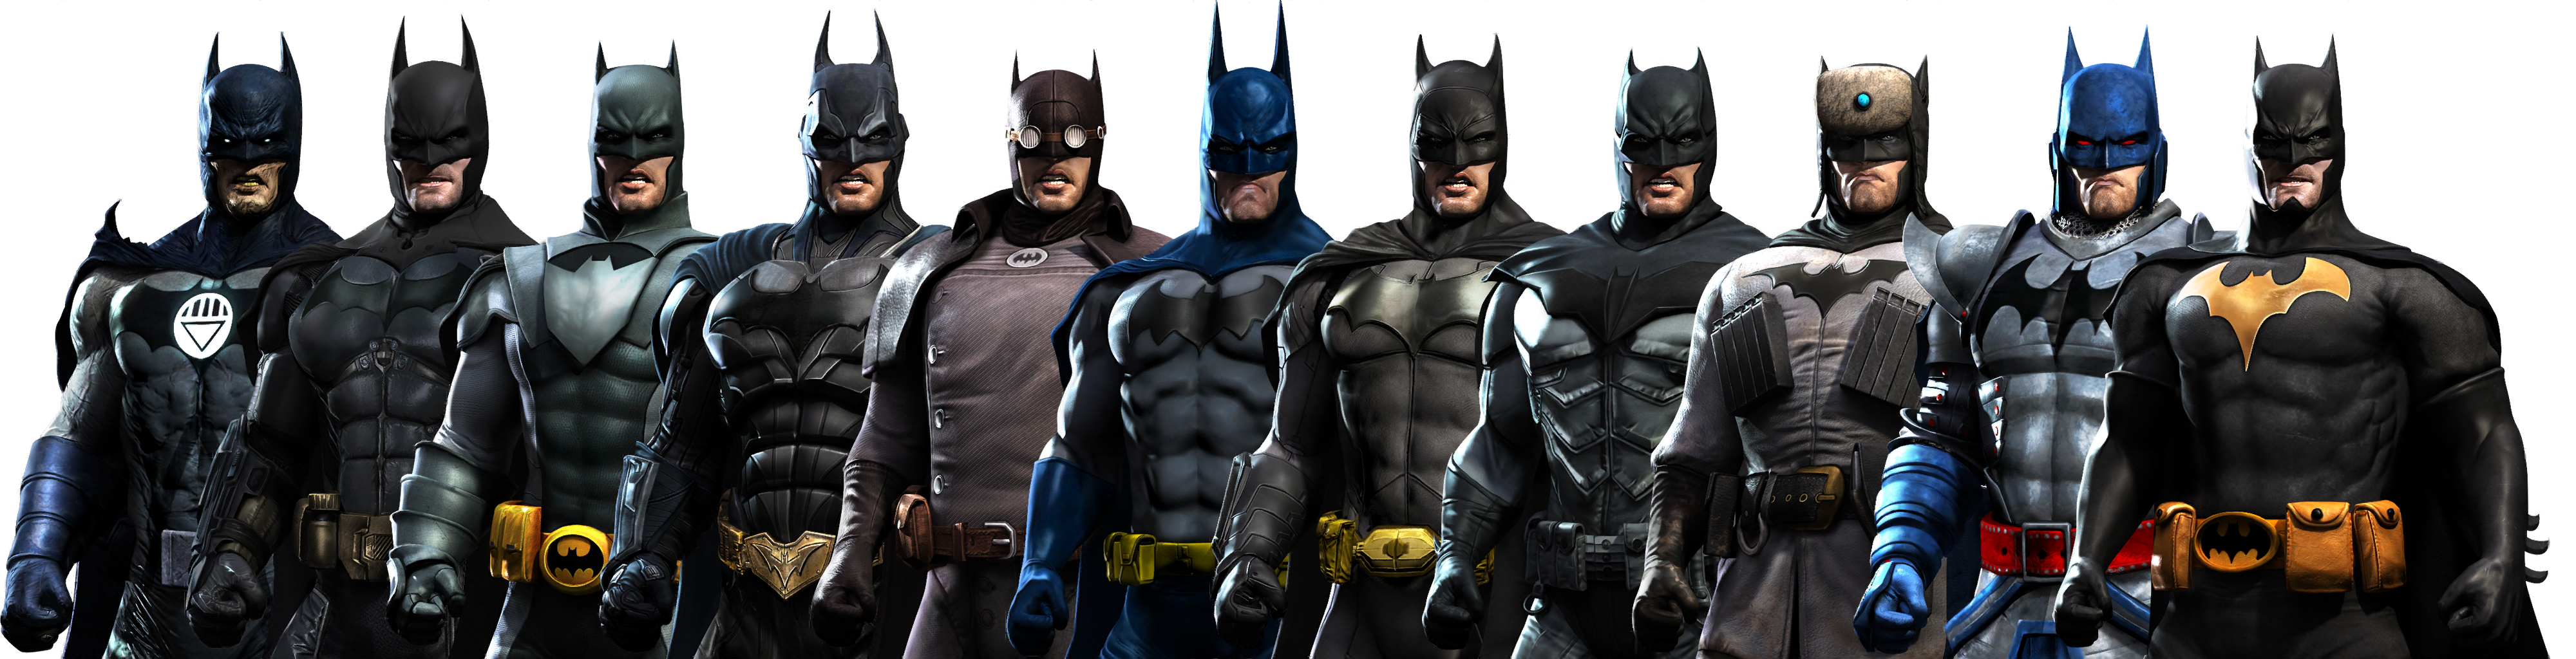 Perfil psicológico de Batman Batman_arkham_origins_ios___batman_pack_by_riccochet2005-d6re1t8